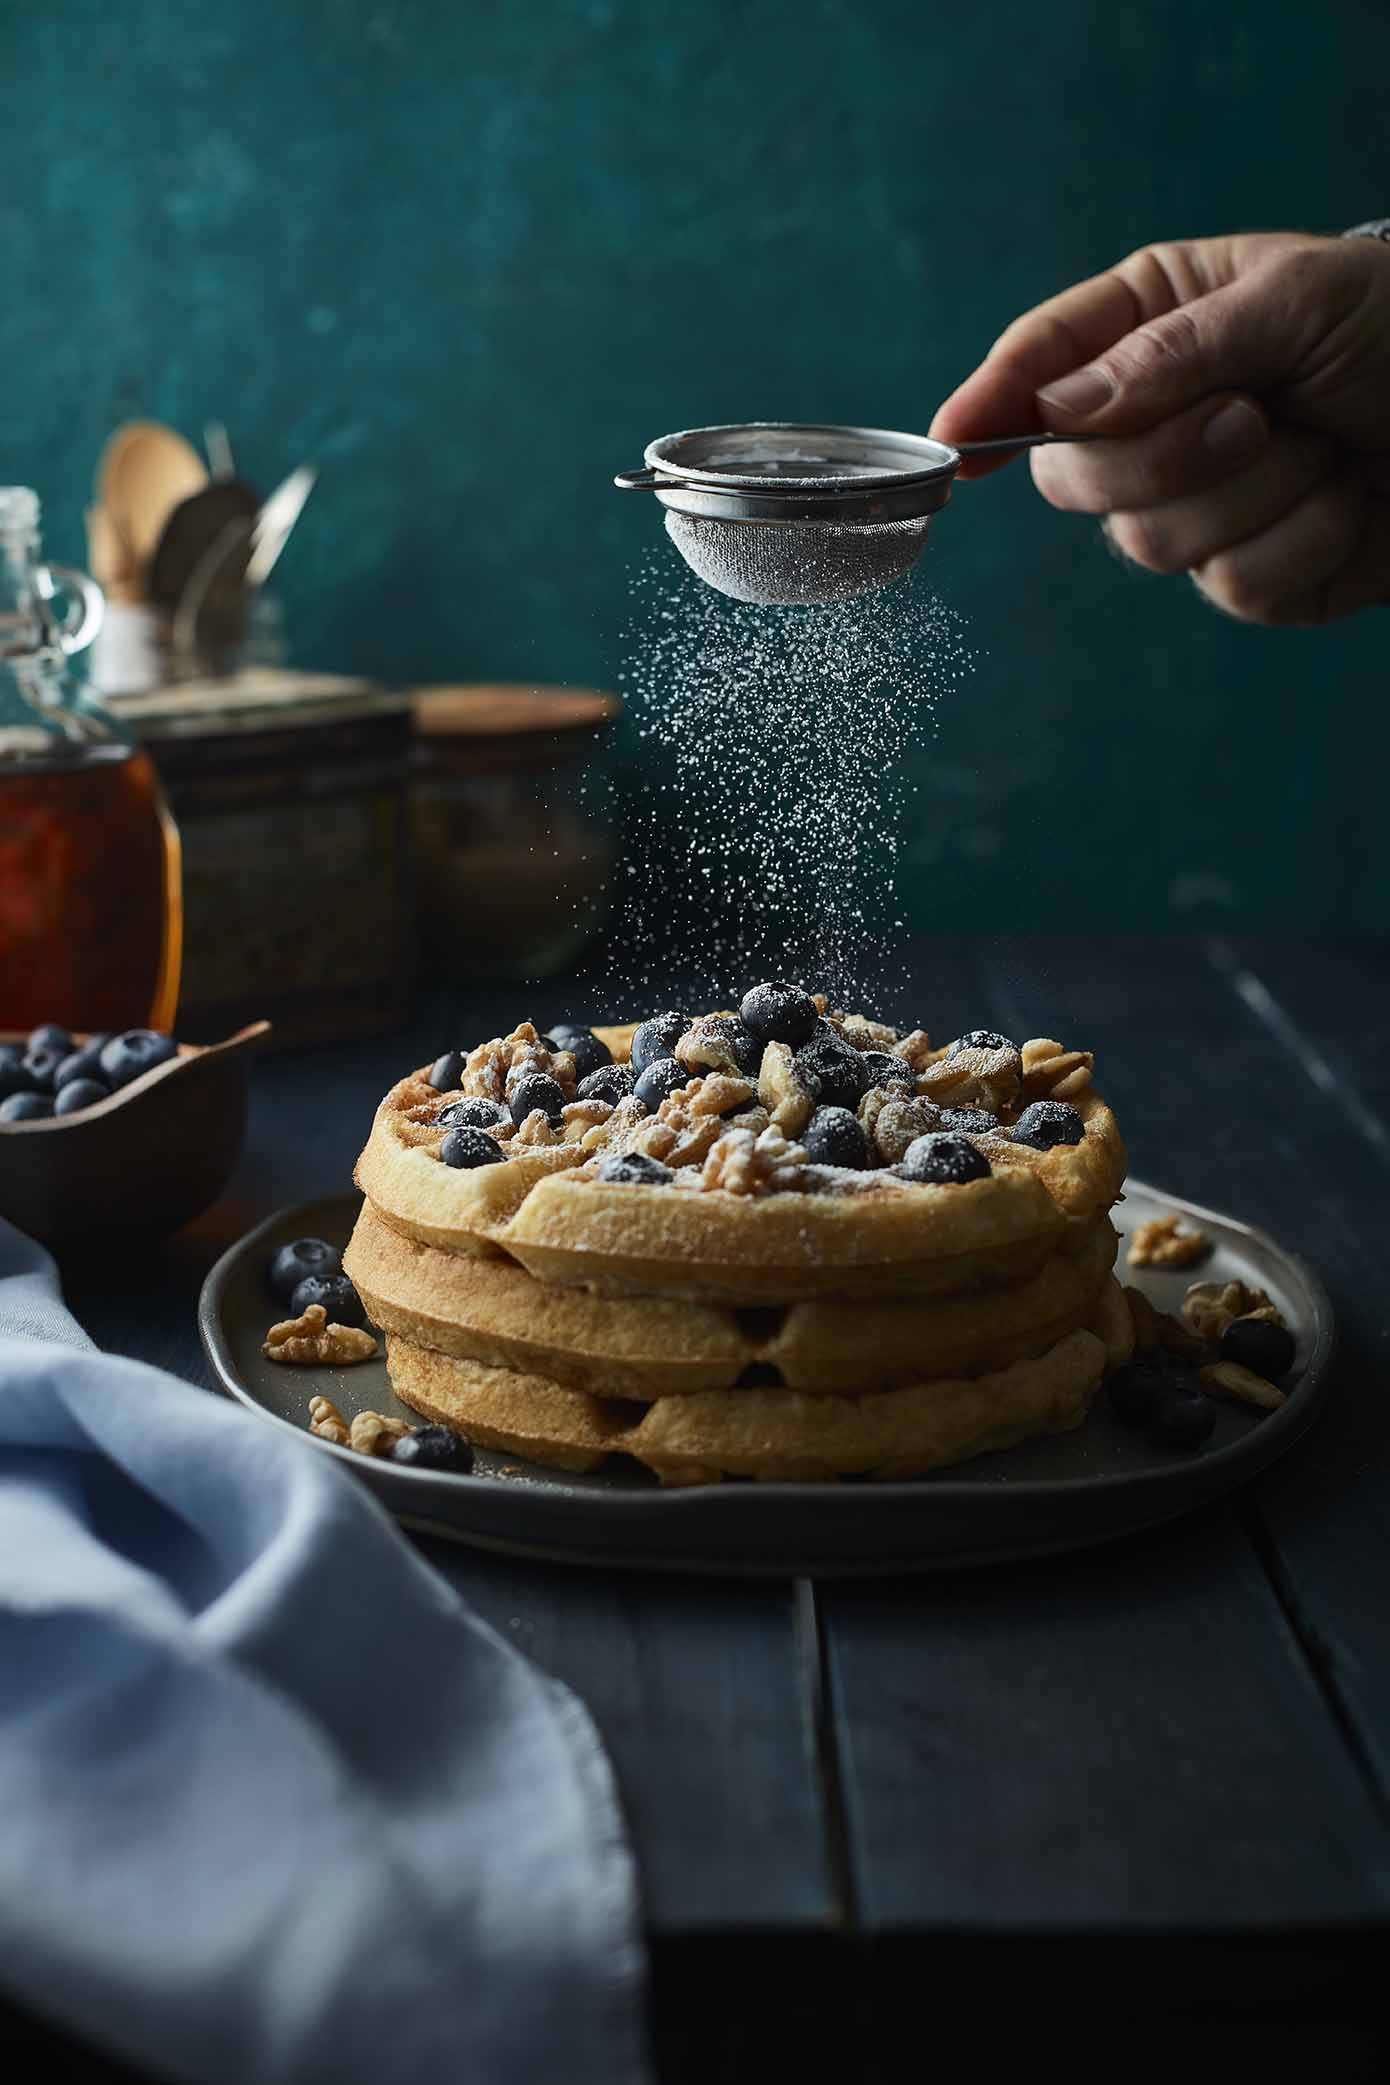 One of the waffle images with powdered sugar falling that I used to create a gif for Instagram